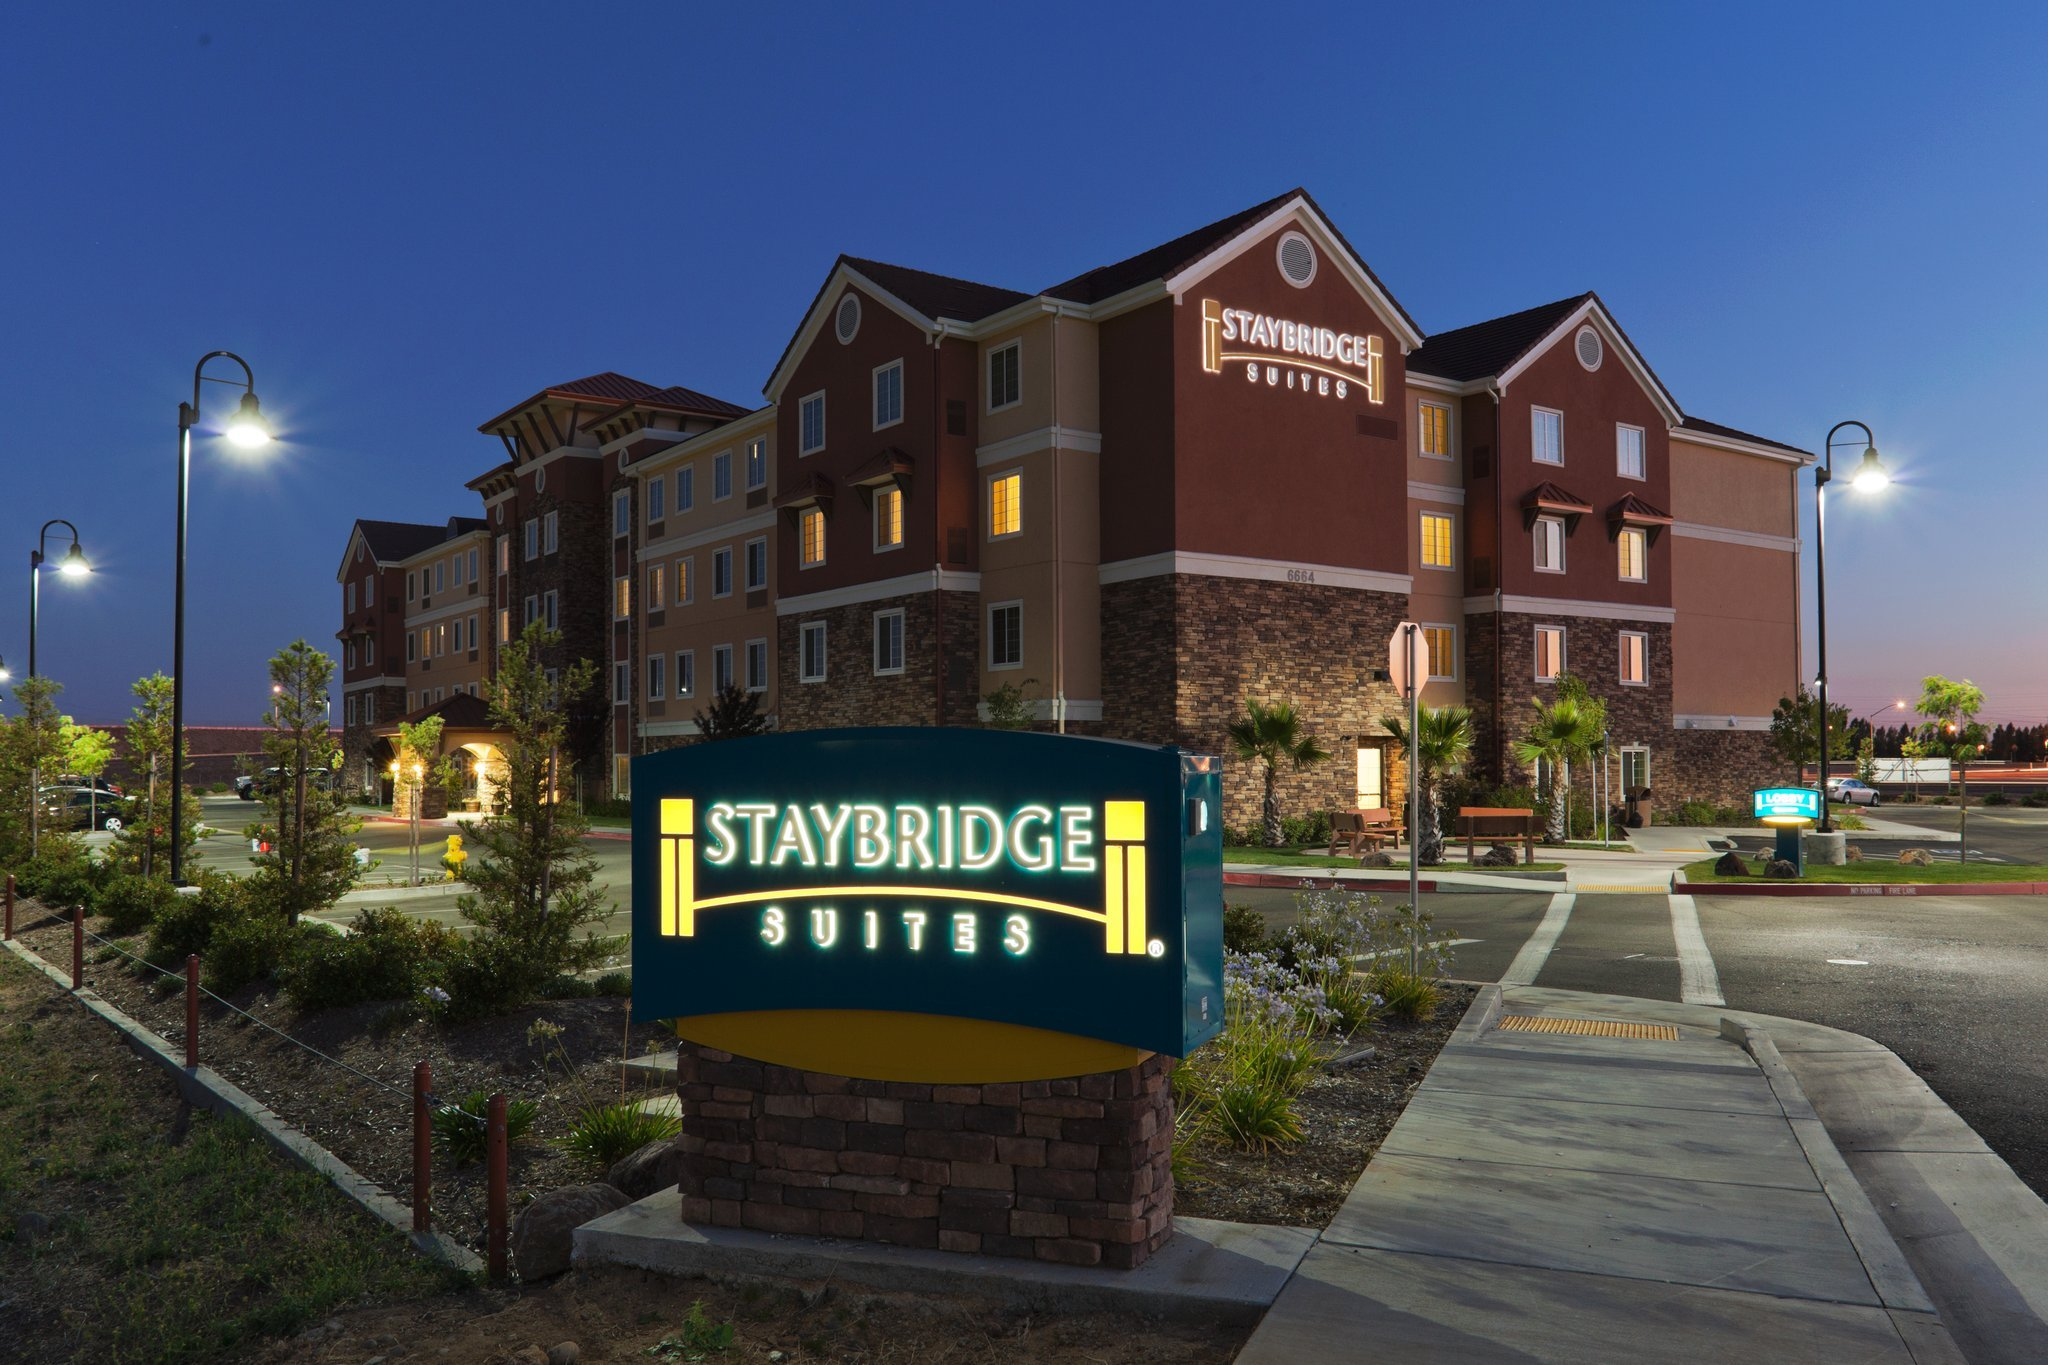 Staybridge Suites Rocklin - Roseville Area